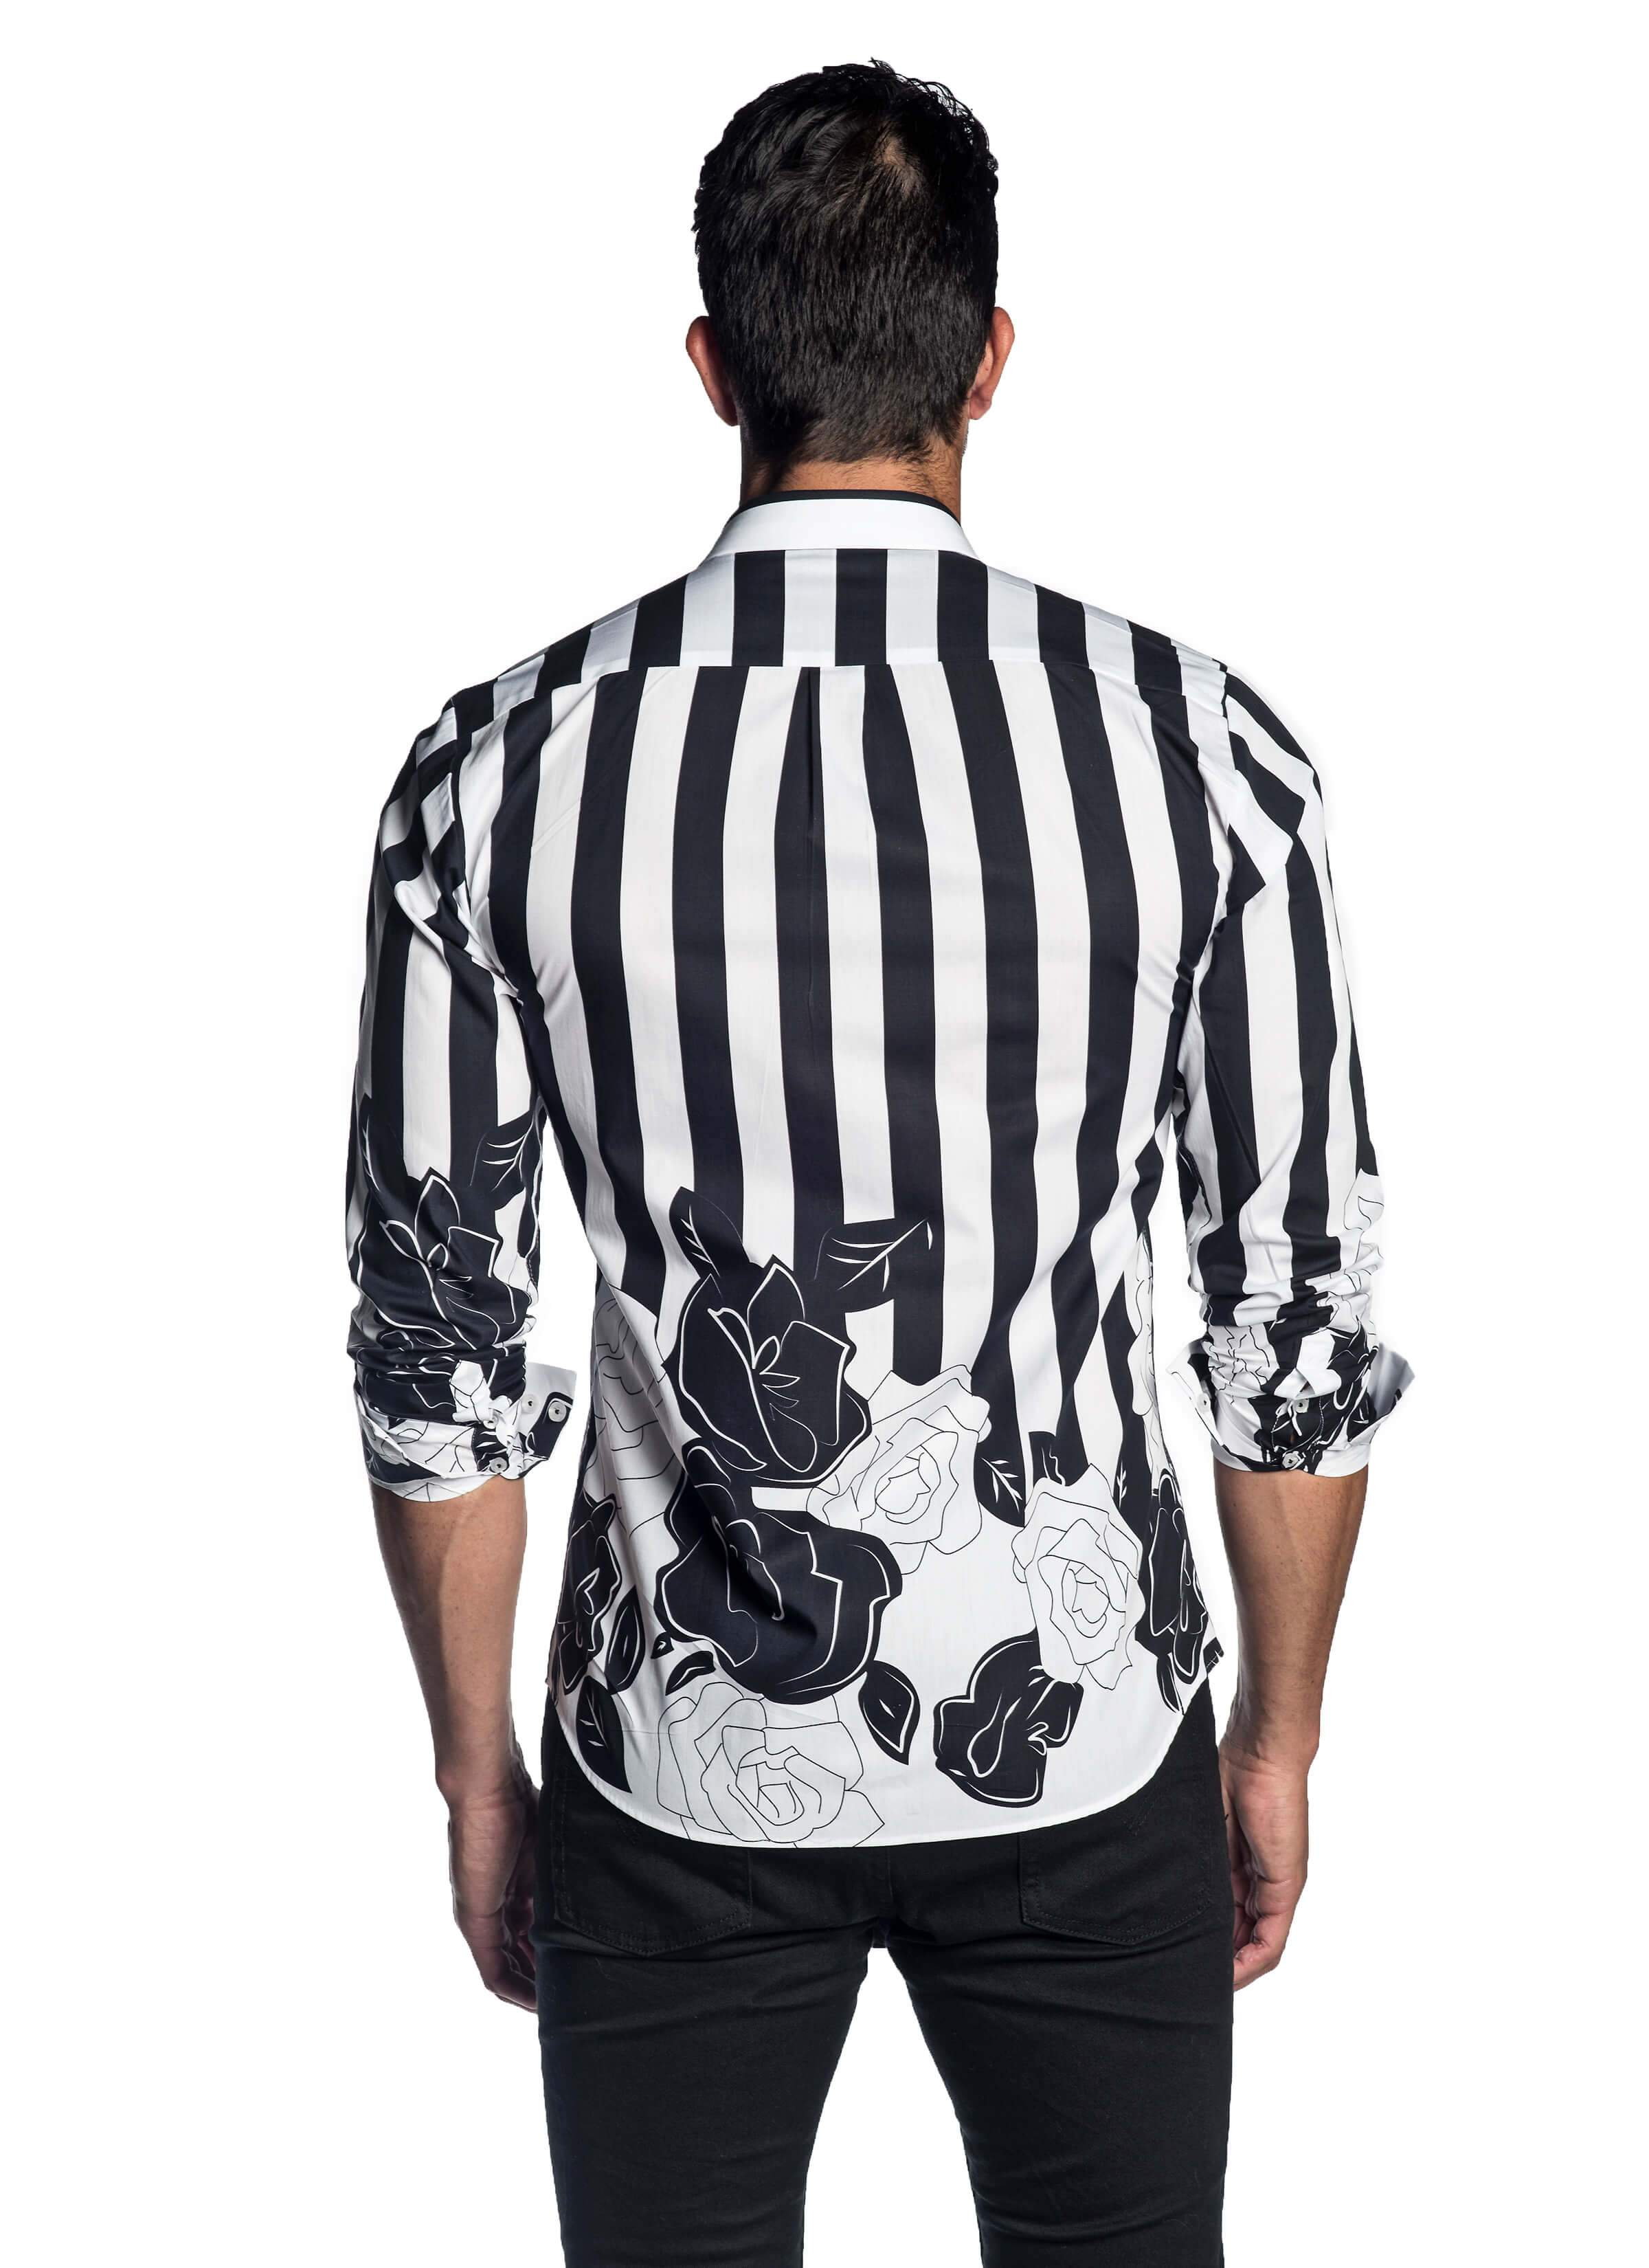 White Black Printed Floral Shirt for Men - BacK - AH-T-2058 - Jared Lang